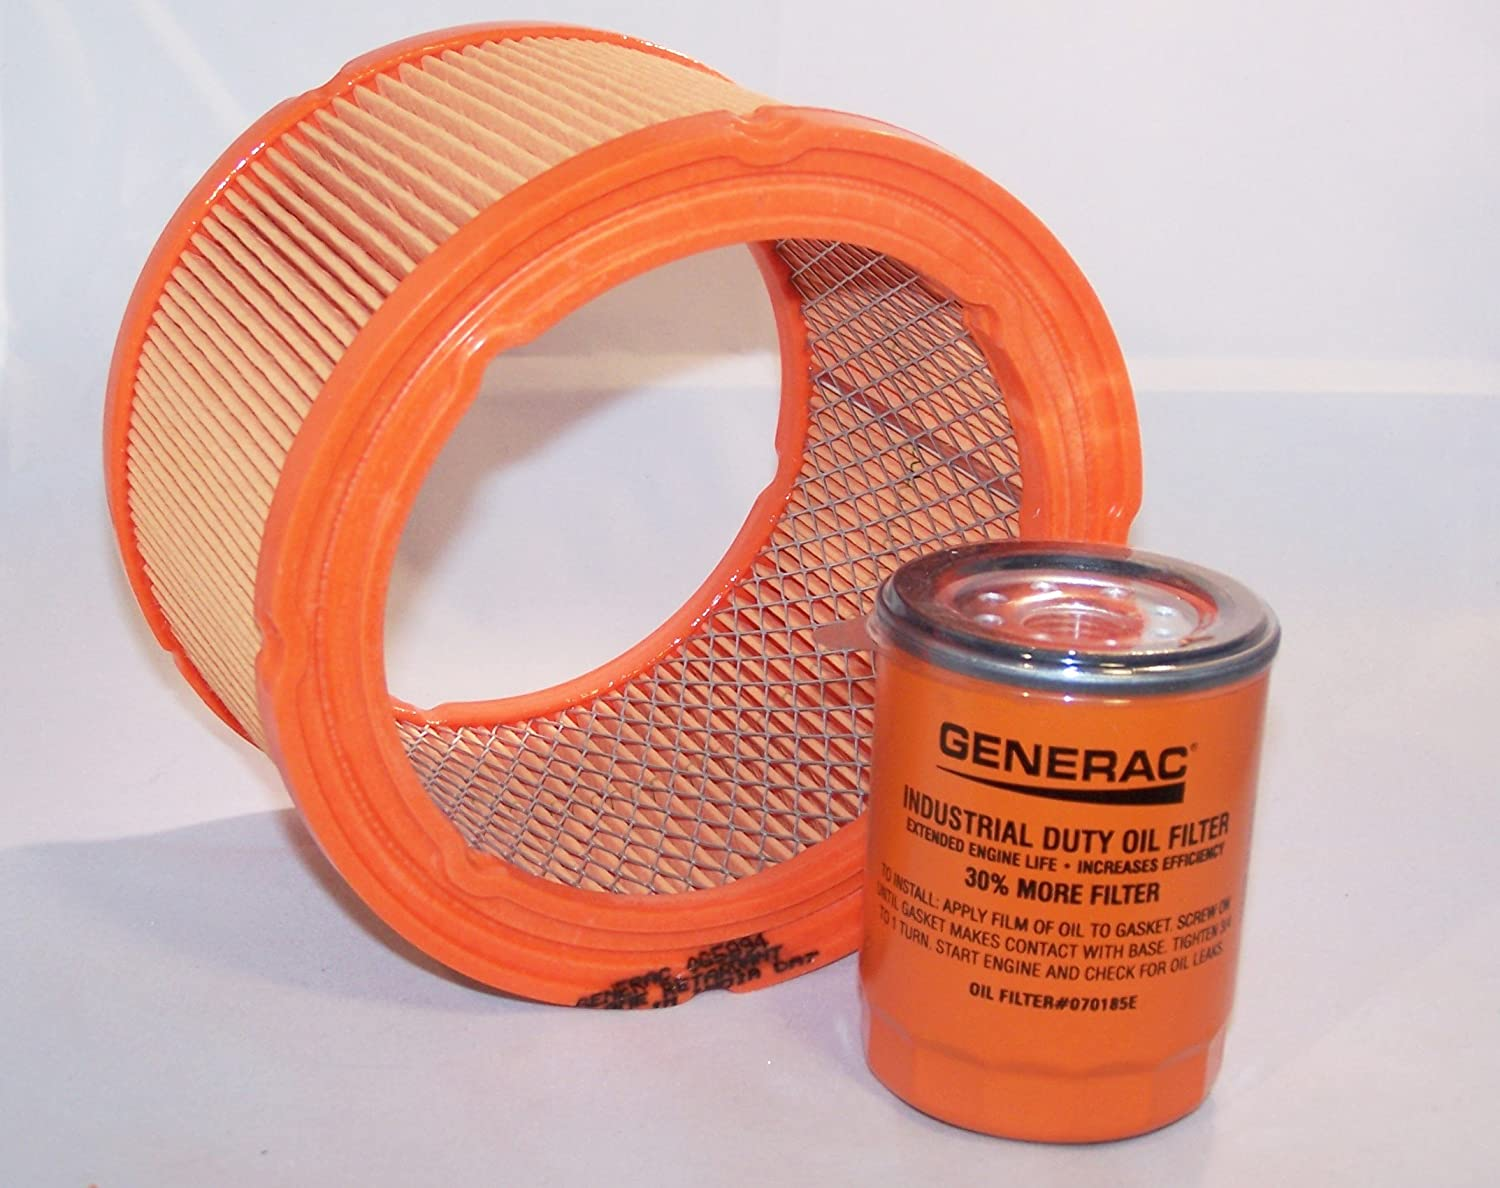 Generac Air Filter 0G5894 and Generac/Uninversal Generator Parts Replacement on